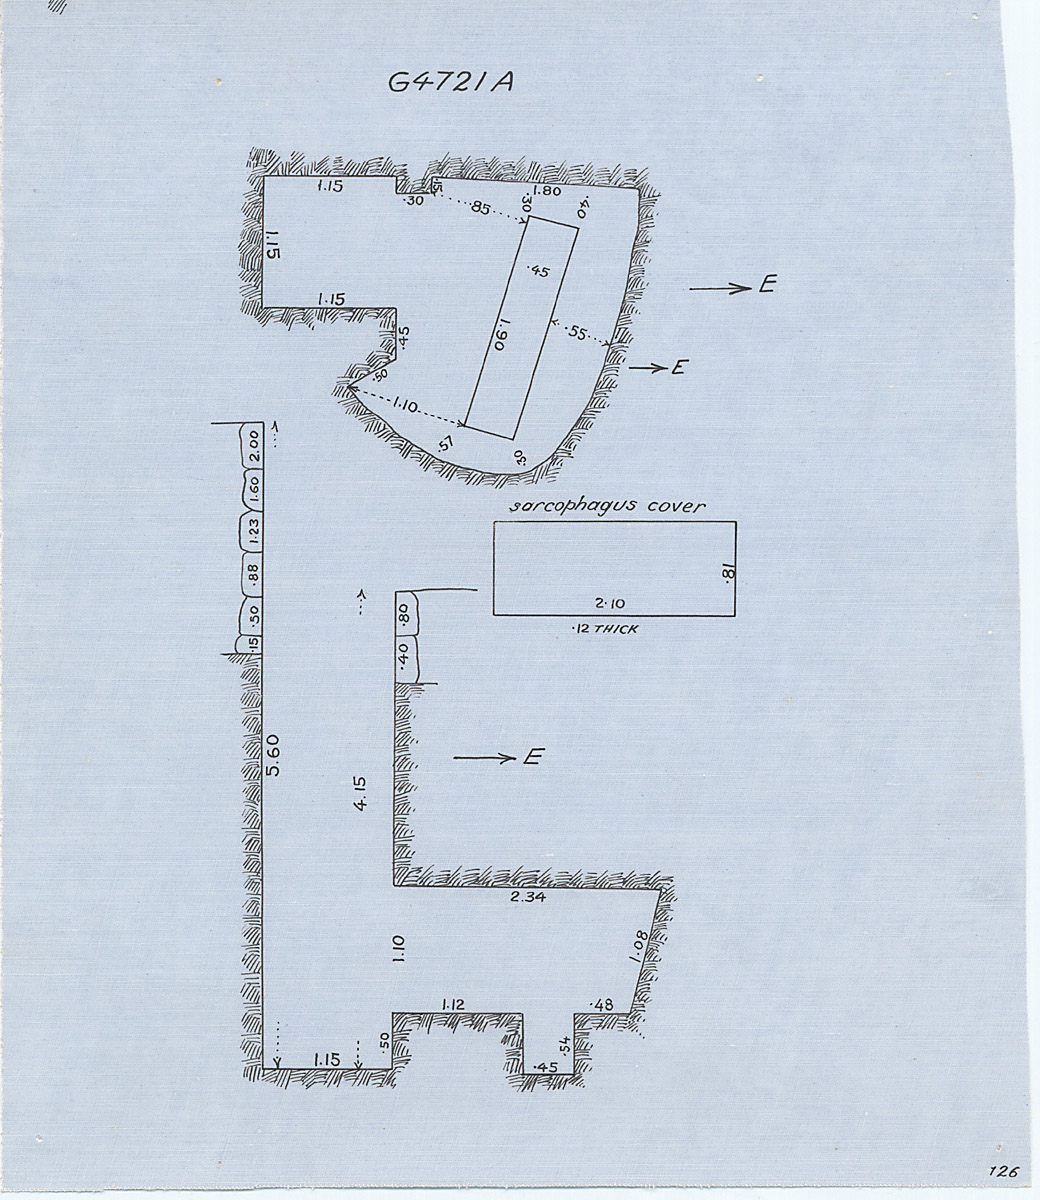 Maps and plans: G 4721, Shaft A